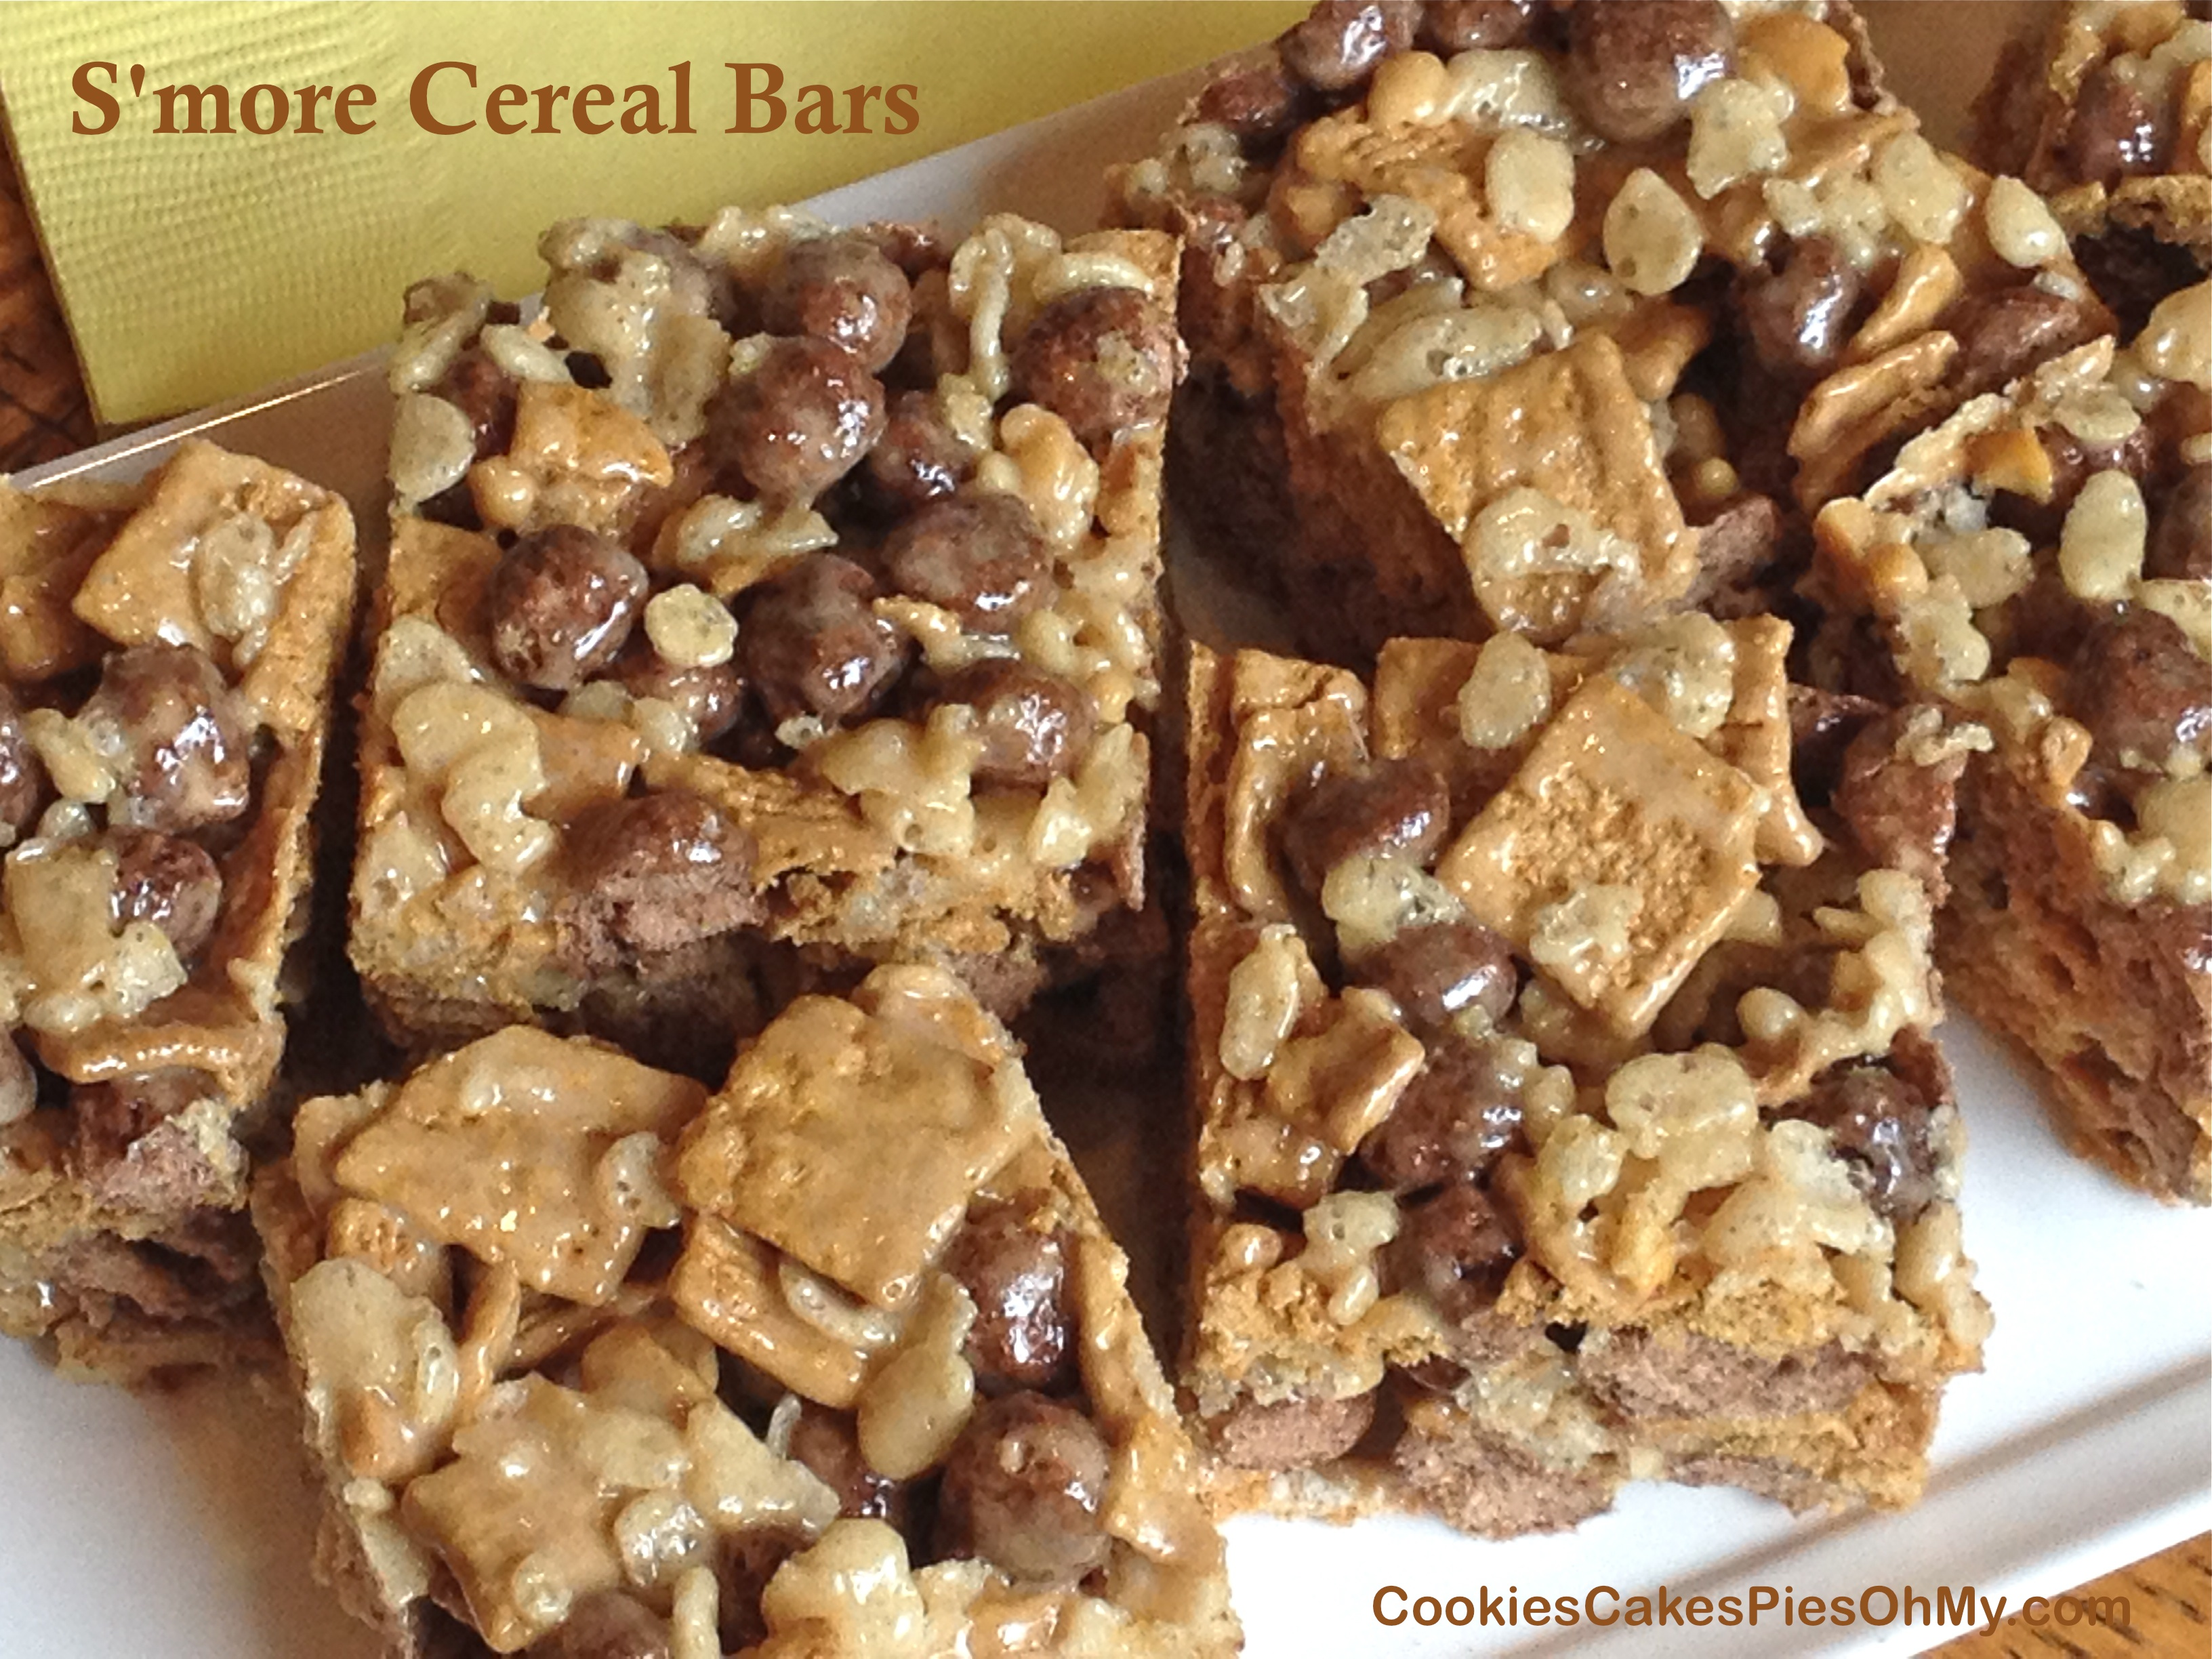 more Cereal Bars | CookiesCakesPiesOhMy